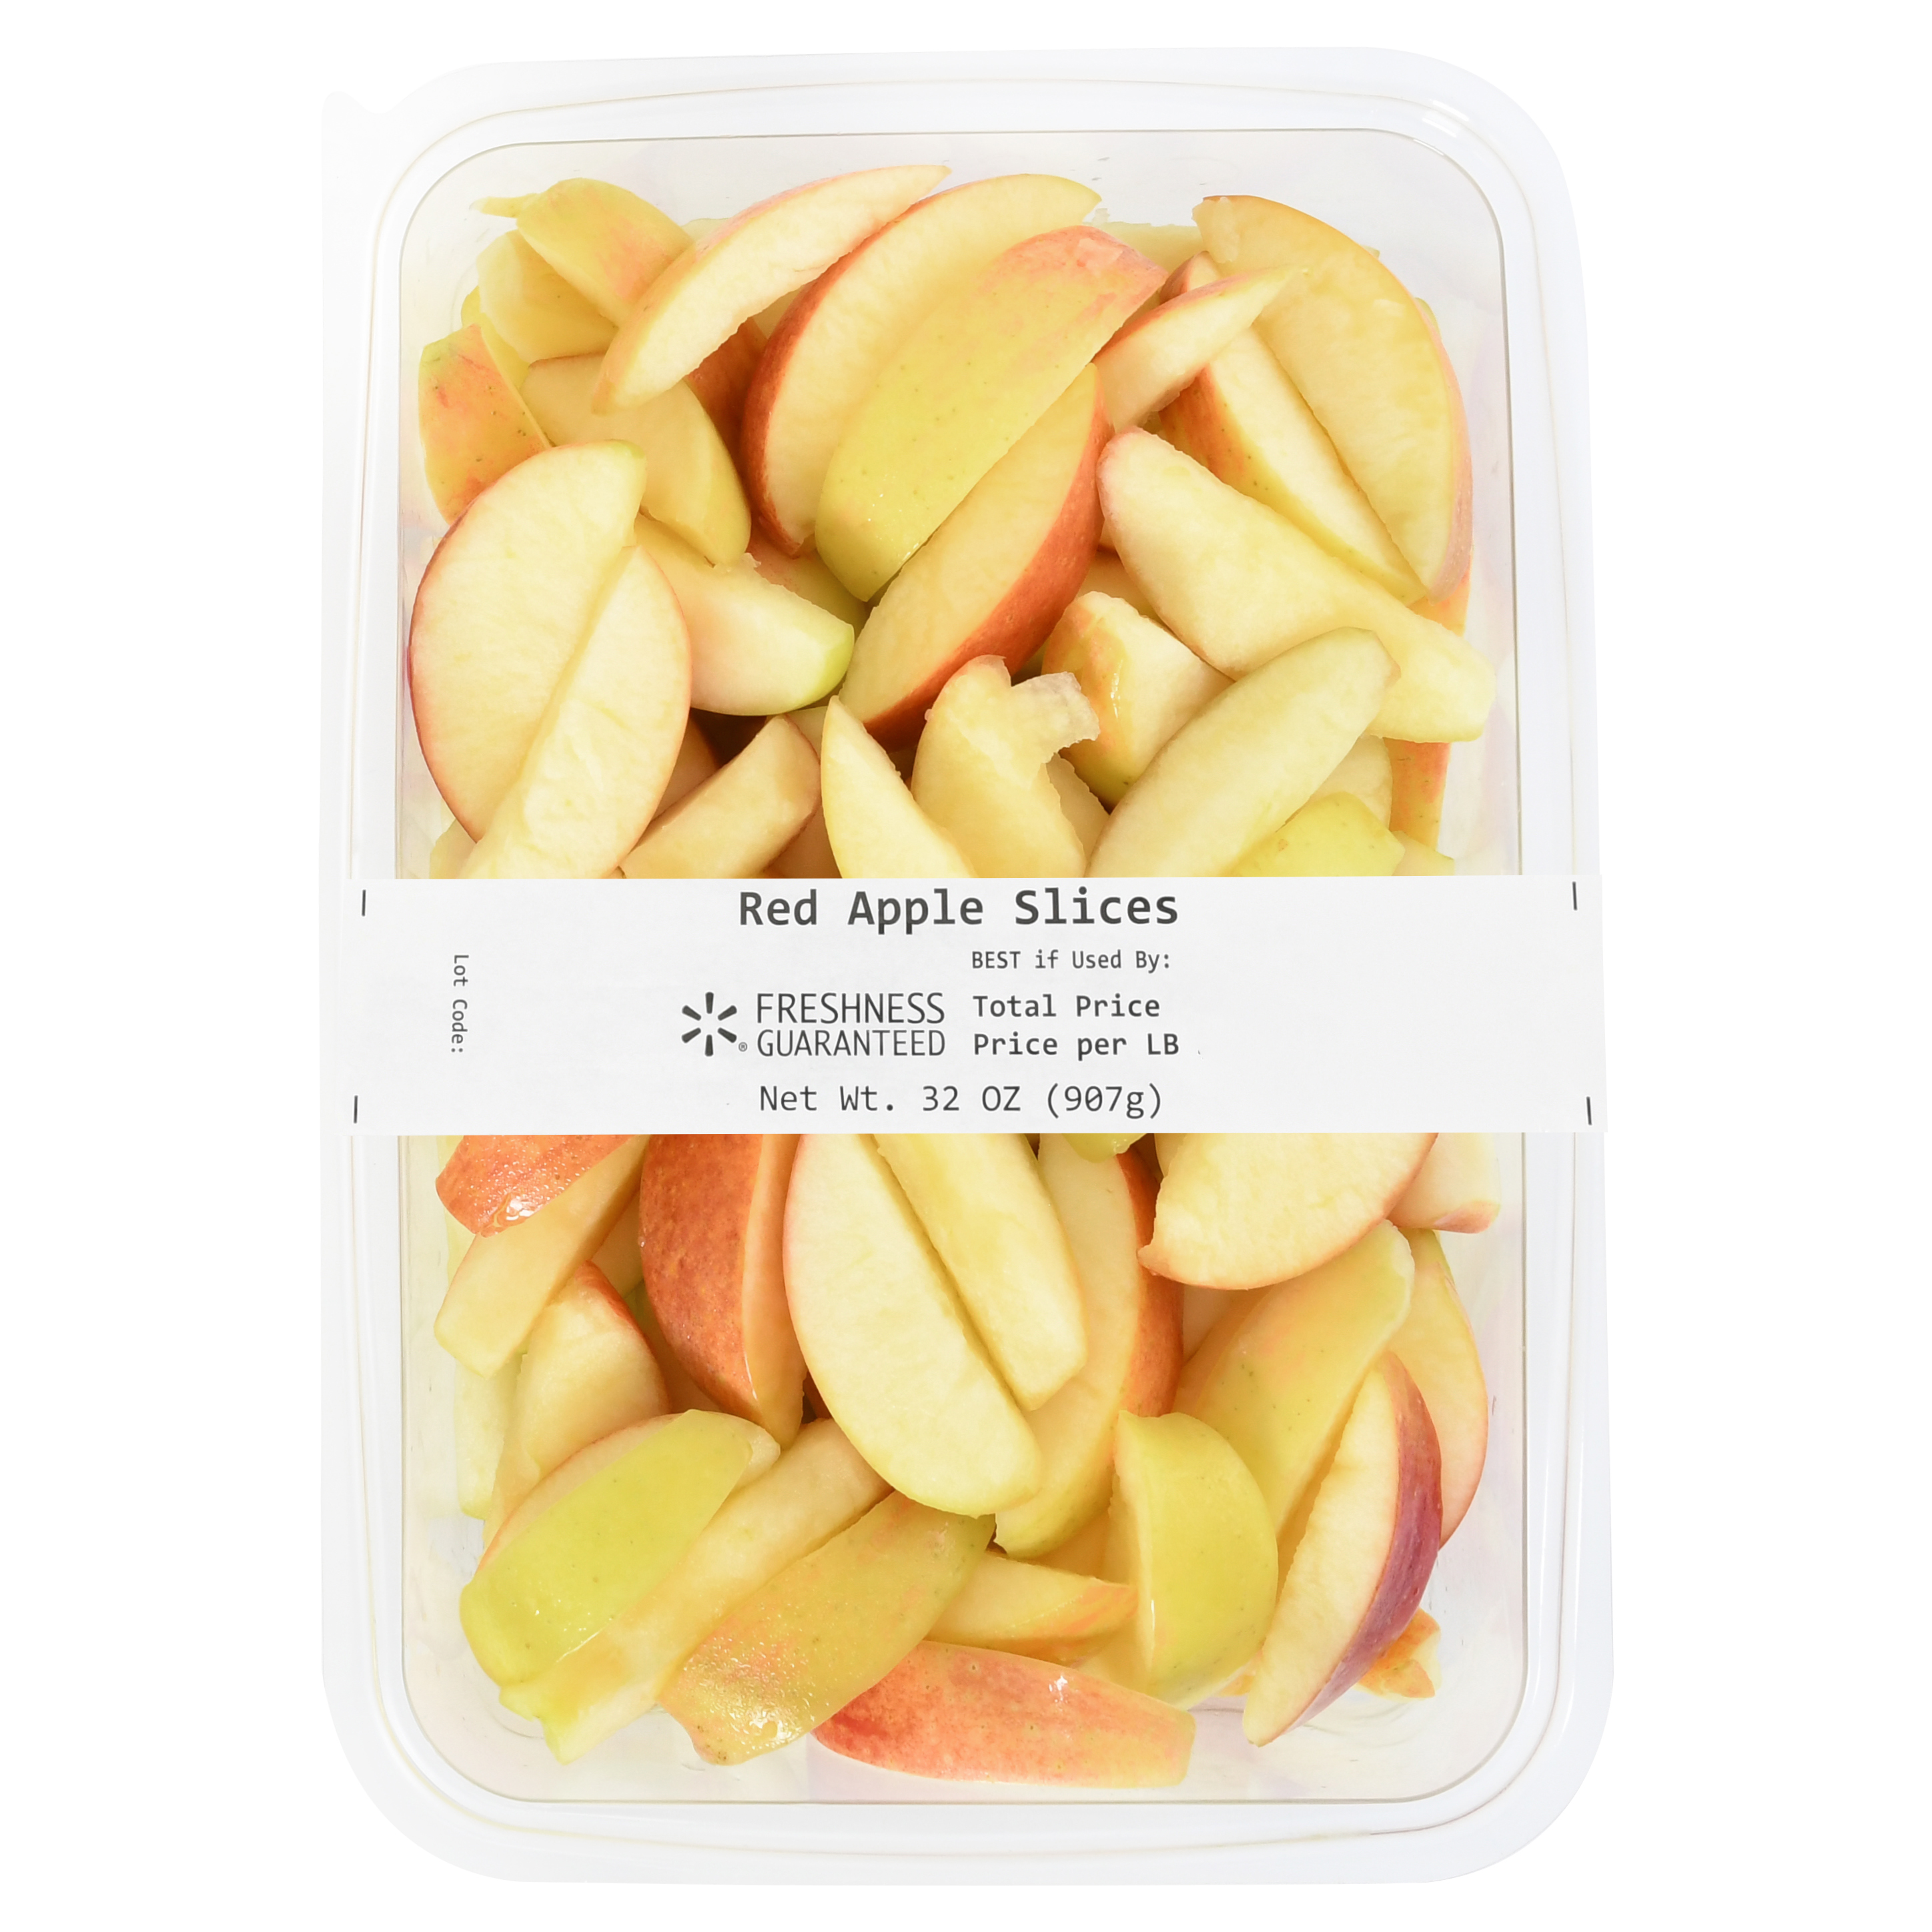 Red Apple Slices, 32 oz